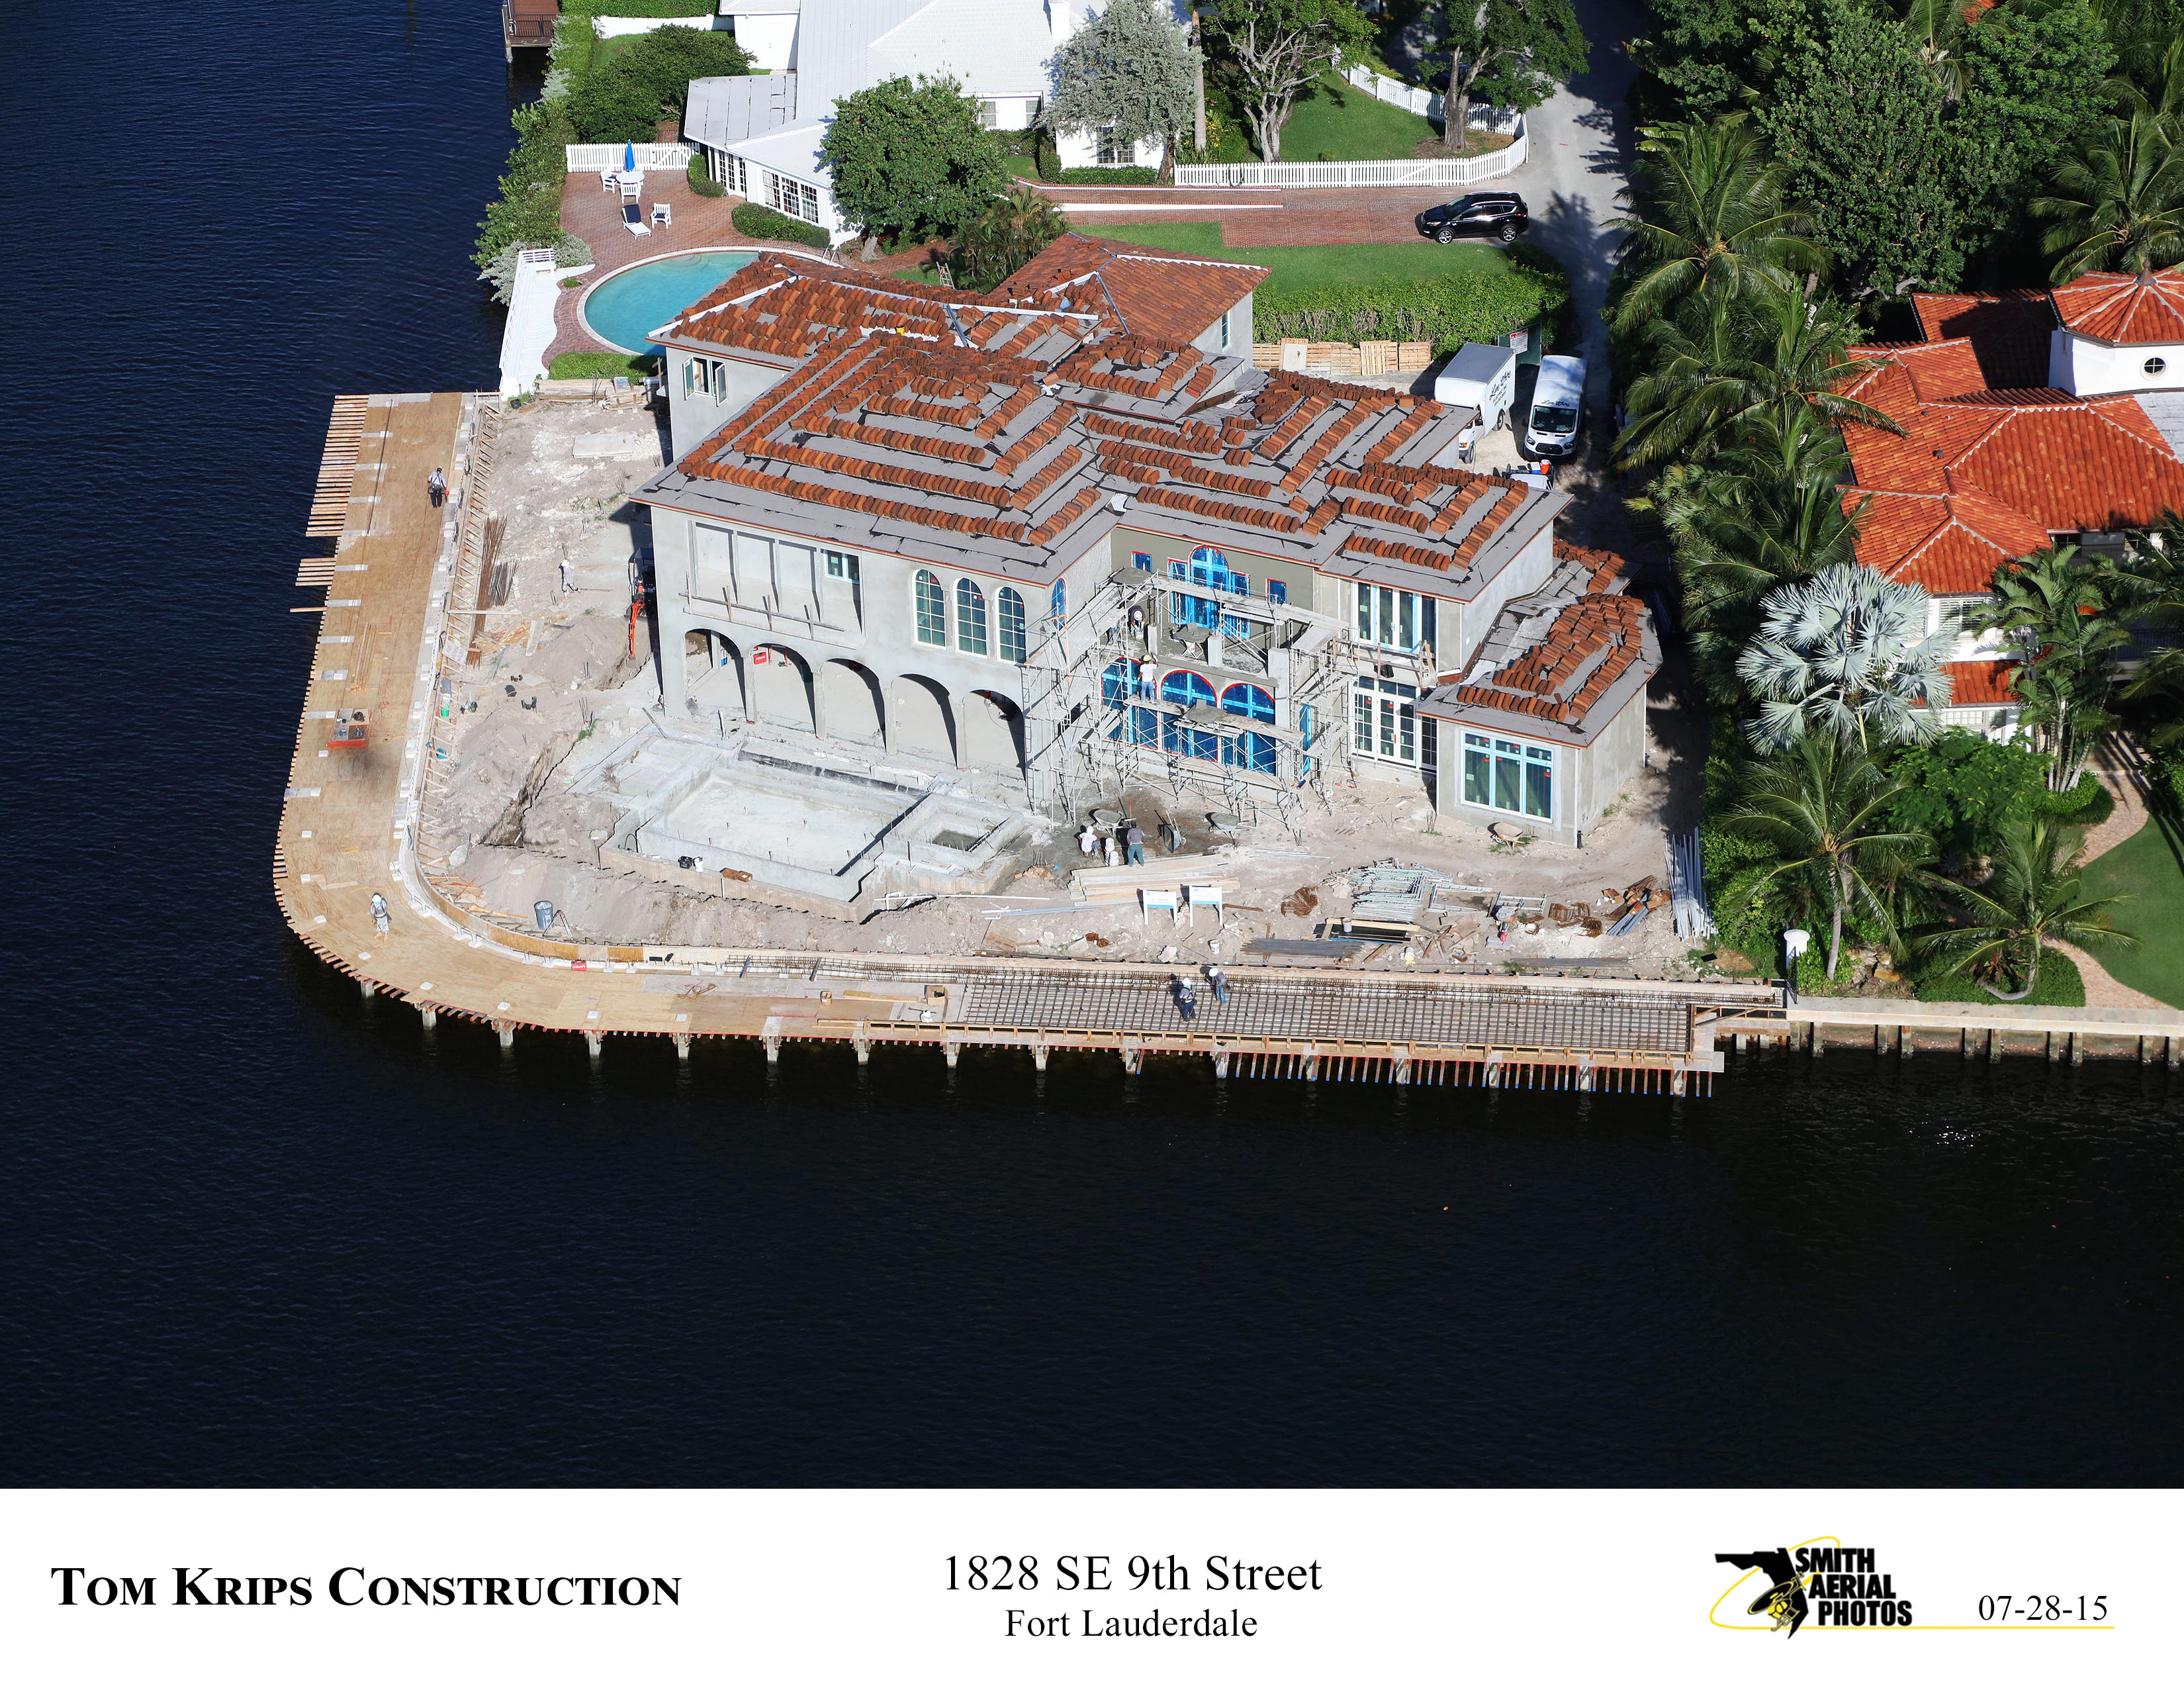 Marine Division Tom Krips Construction